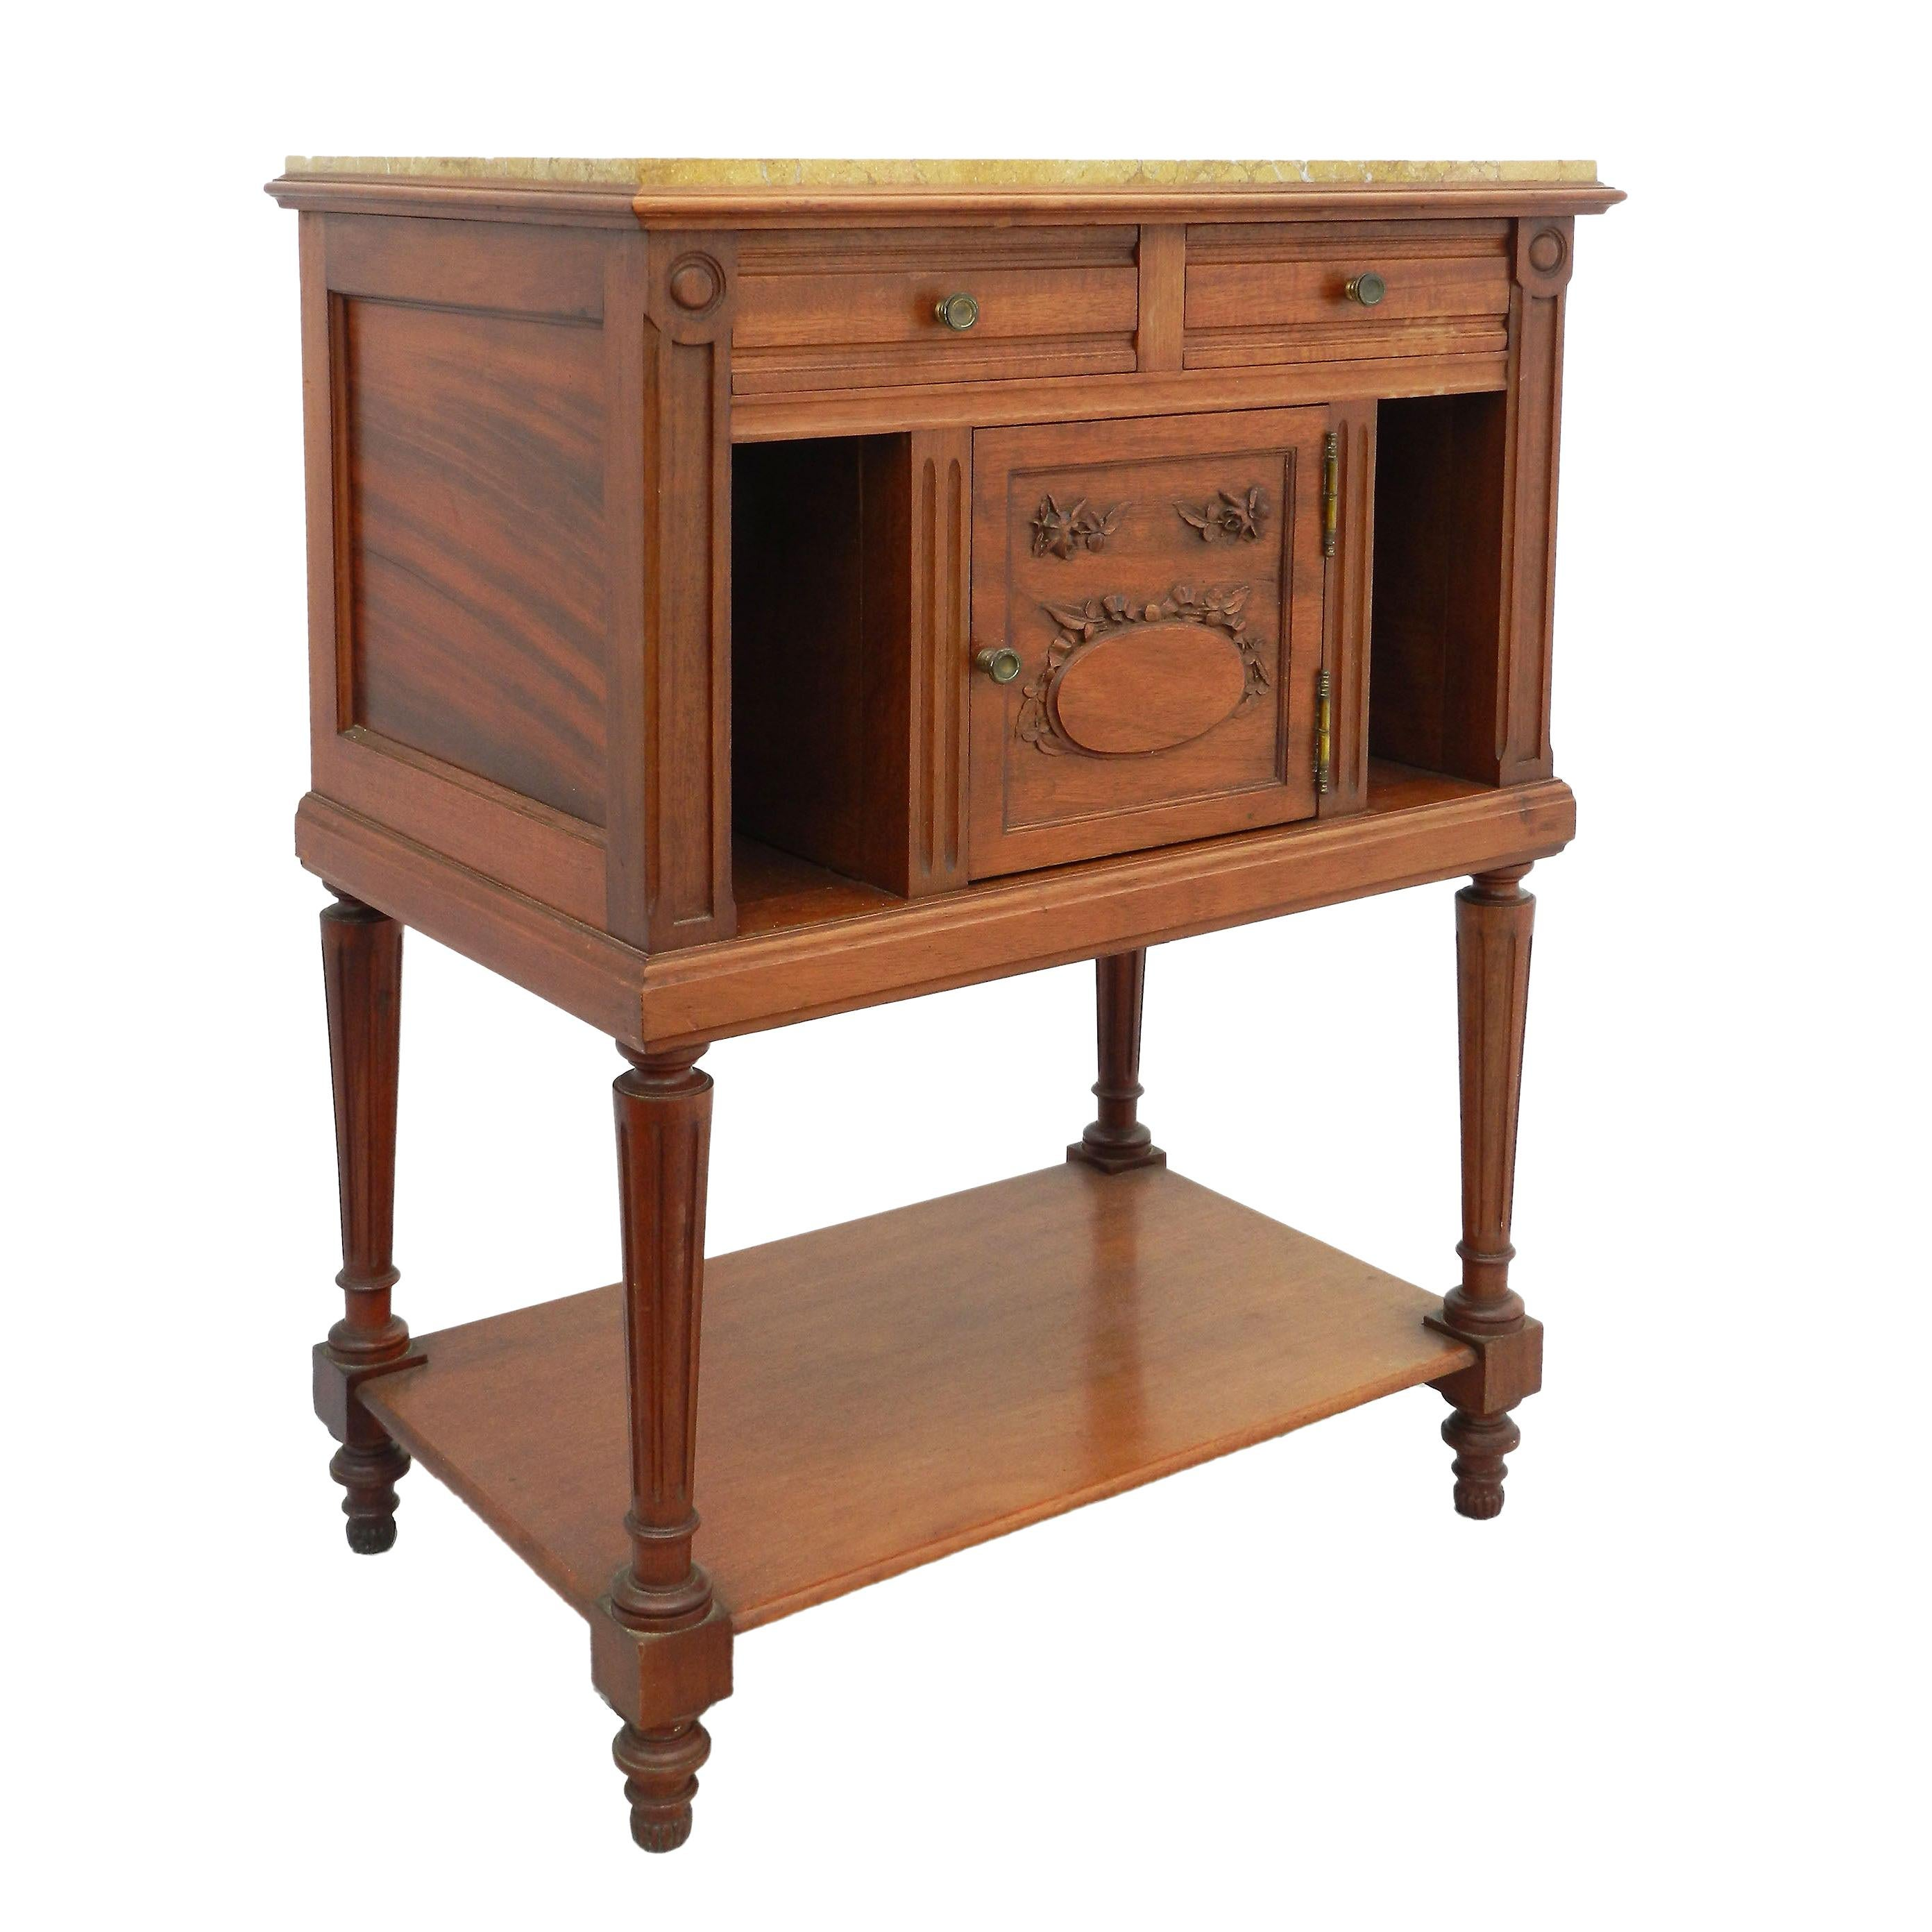 French Side Cabinet Nightstand Bedside Table 19th Century Louis XVI